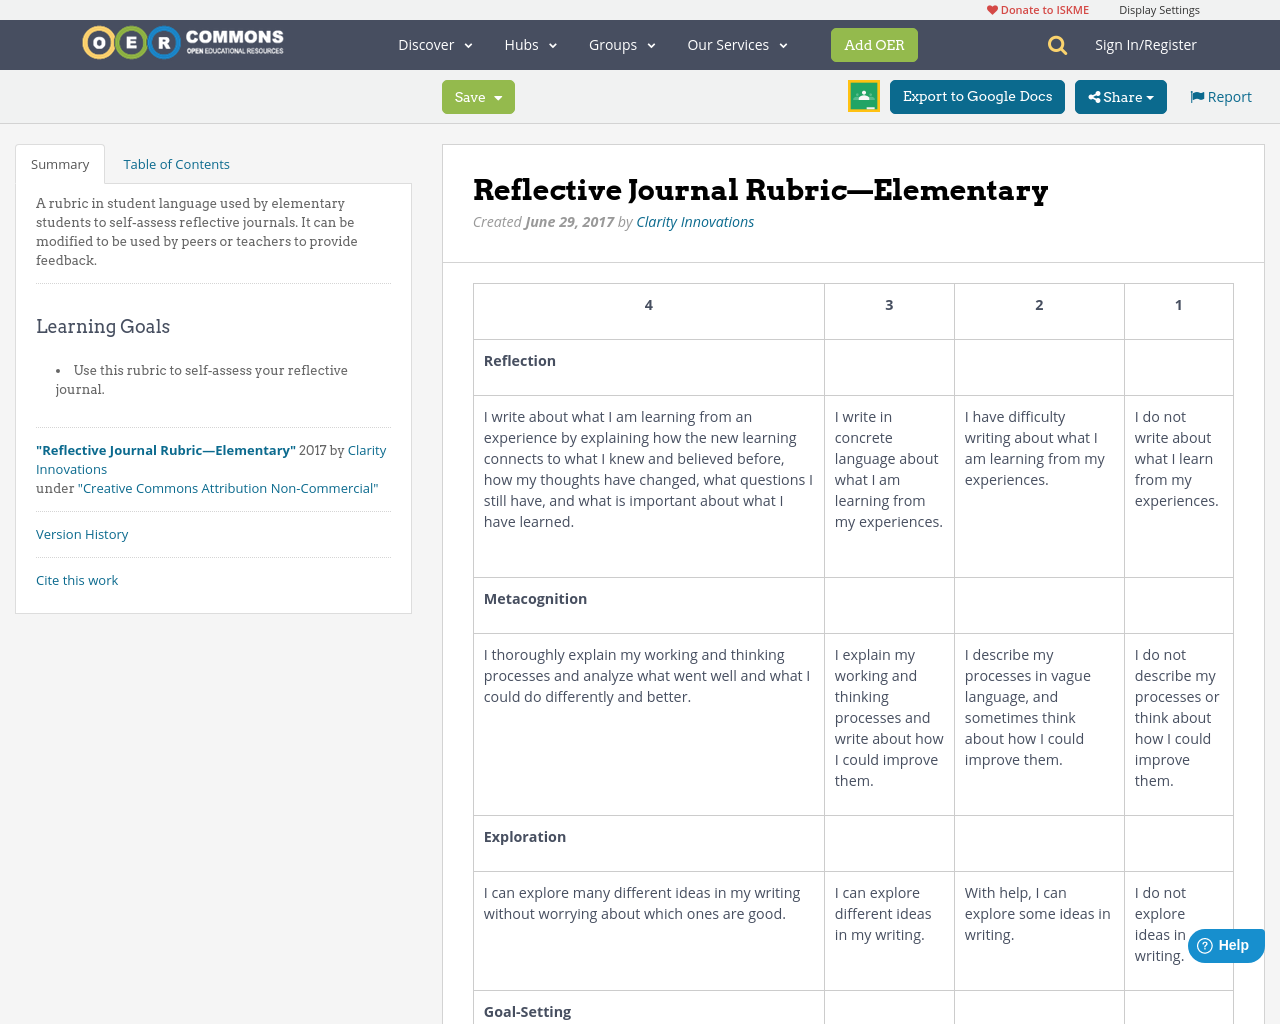 reflective journal rubricelementary oer commons